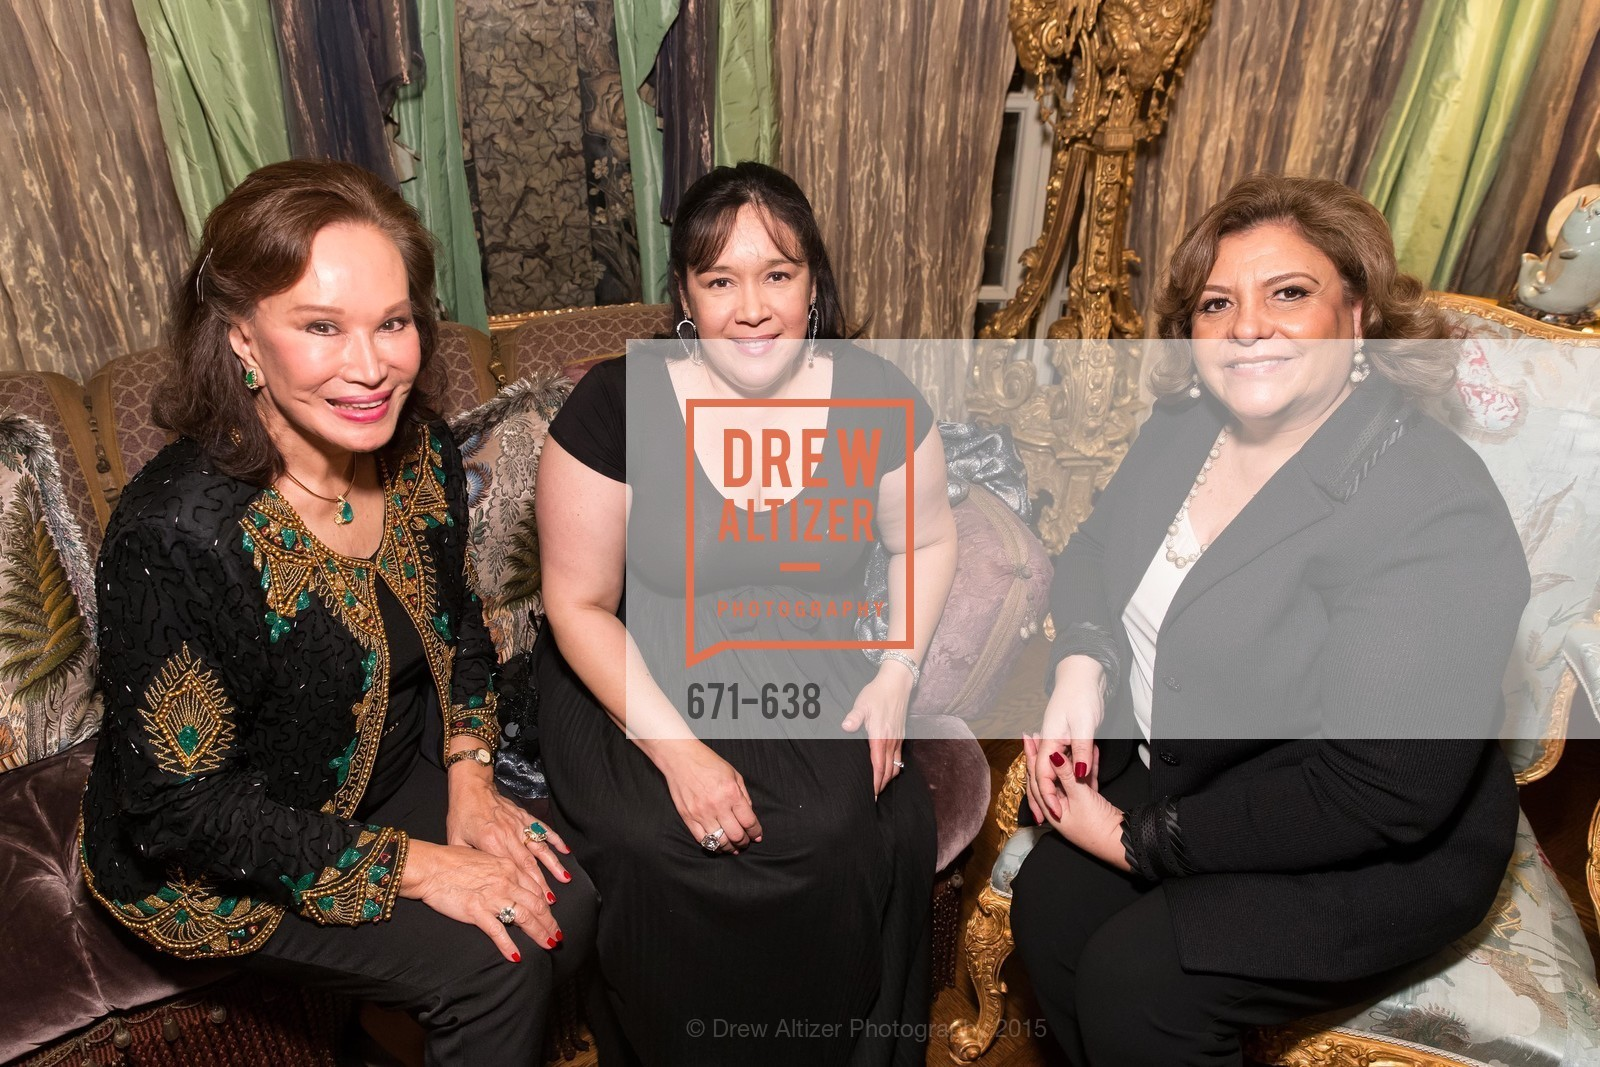 Martha Hertelendy, Tiesay Lugo, Candy Chavez, San Francisco Mayor's Office of Protocol Christmas Party, Private Residence, December 9th, 2015,Drew Altizer, Drew Altizer Photography, full-service event agency, private events, San Francisco photographer, photographer California